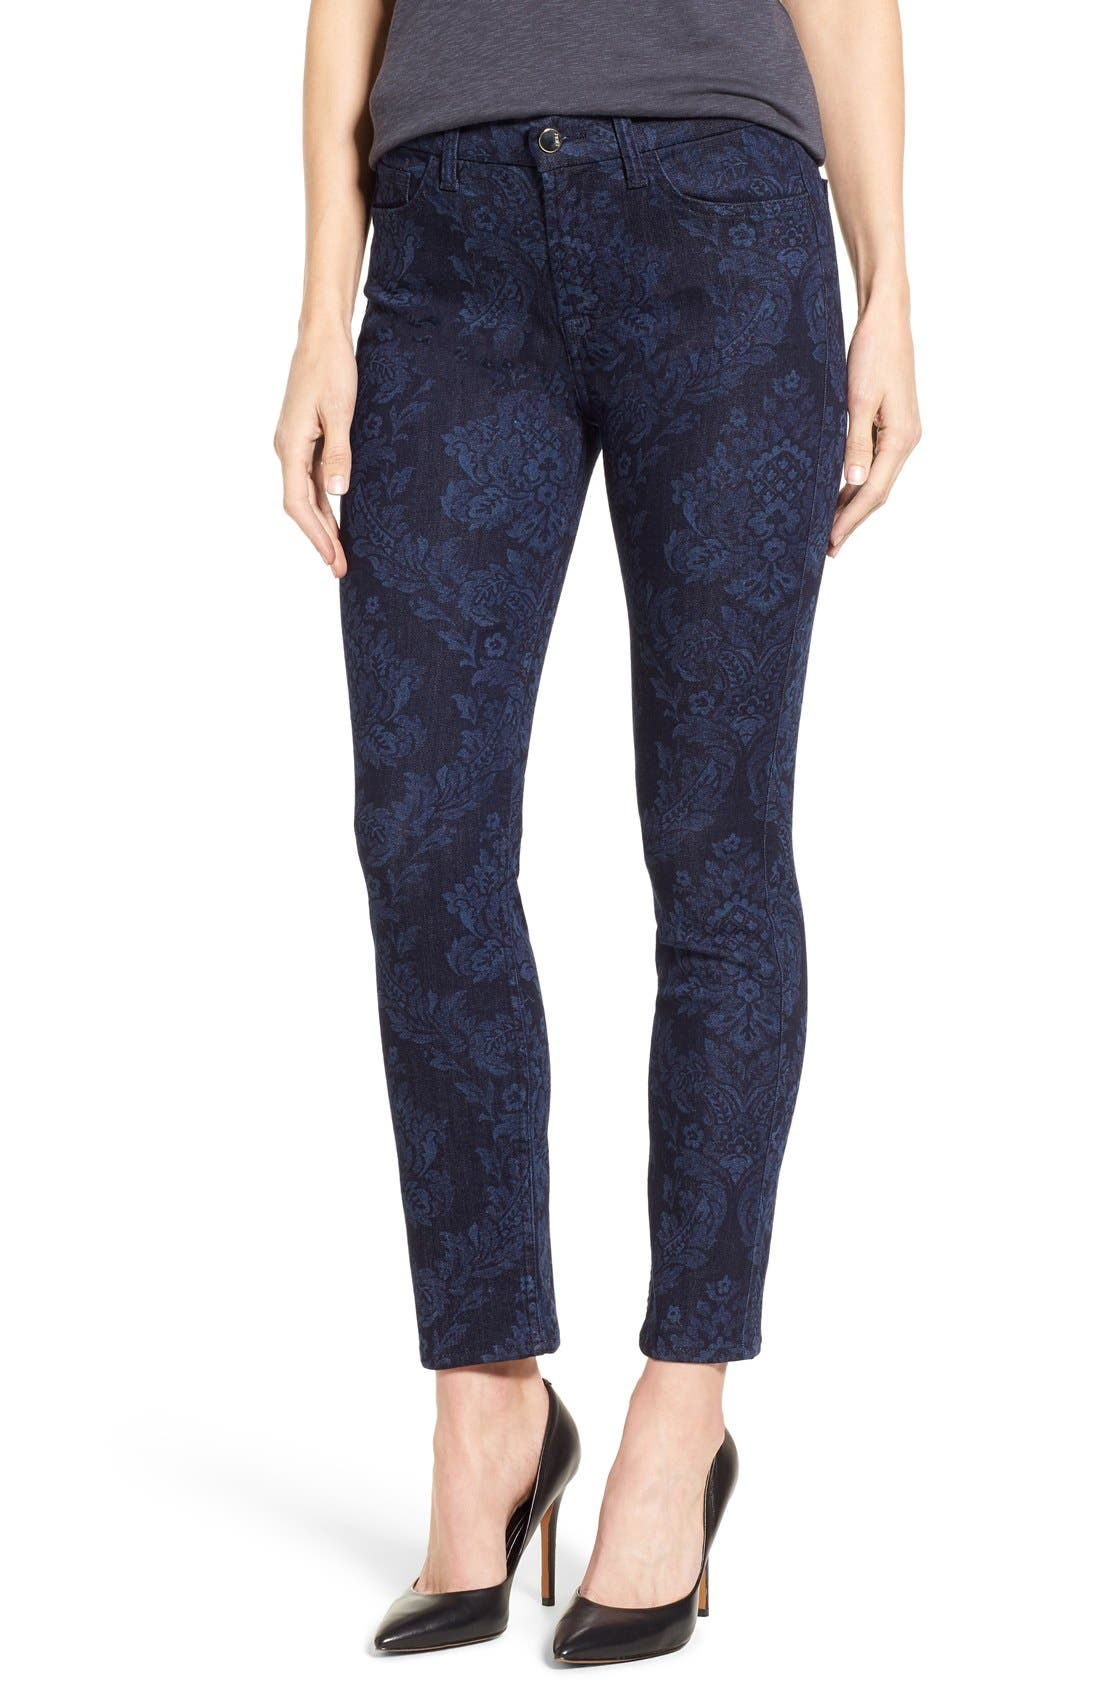 Alternate Image 1 Selected - Jen7 Tapestry Jacquard Ankle Skinny Jeans